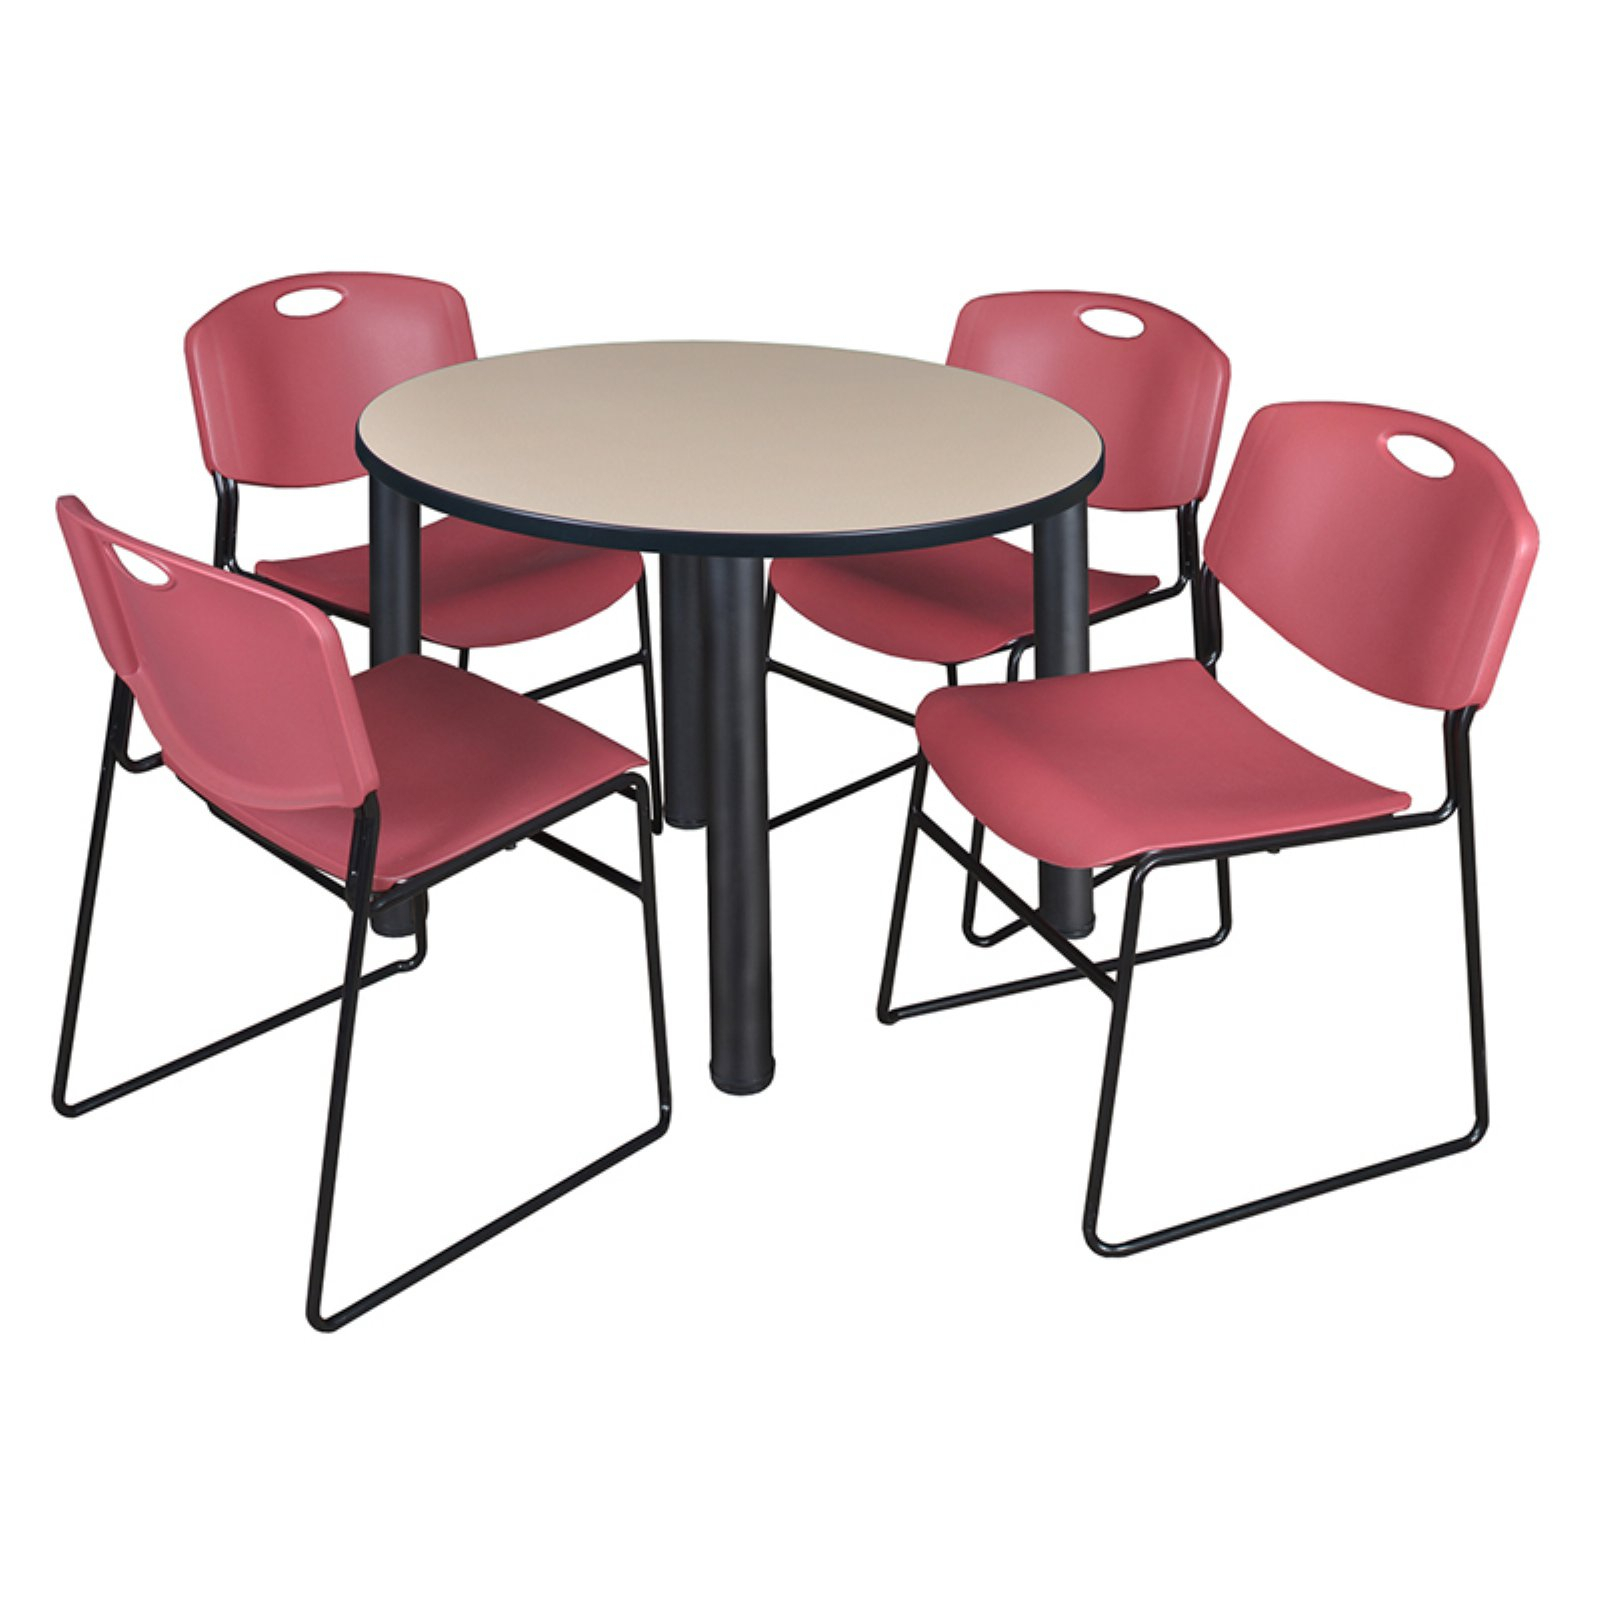 Regency Kee Round Beige Breakroom Table With 4 Stackable Throughout Most Recently Released Round Breakroom Tables And Chair Set (View 11 of 15)